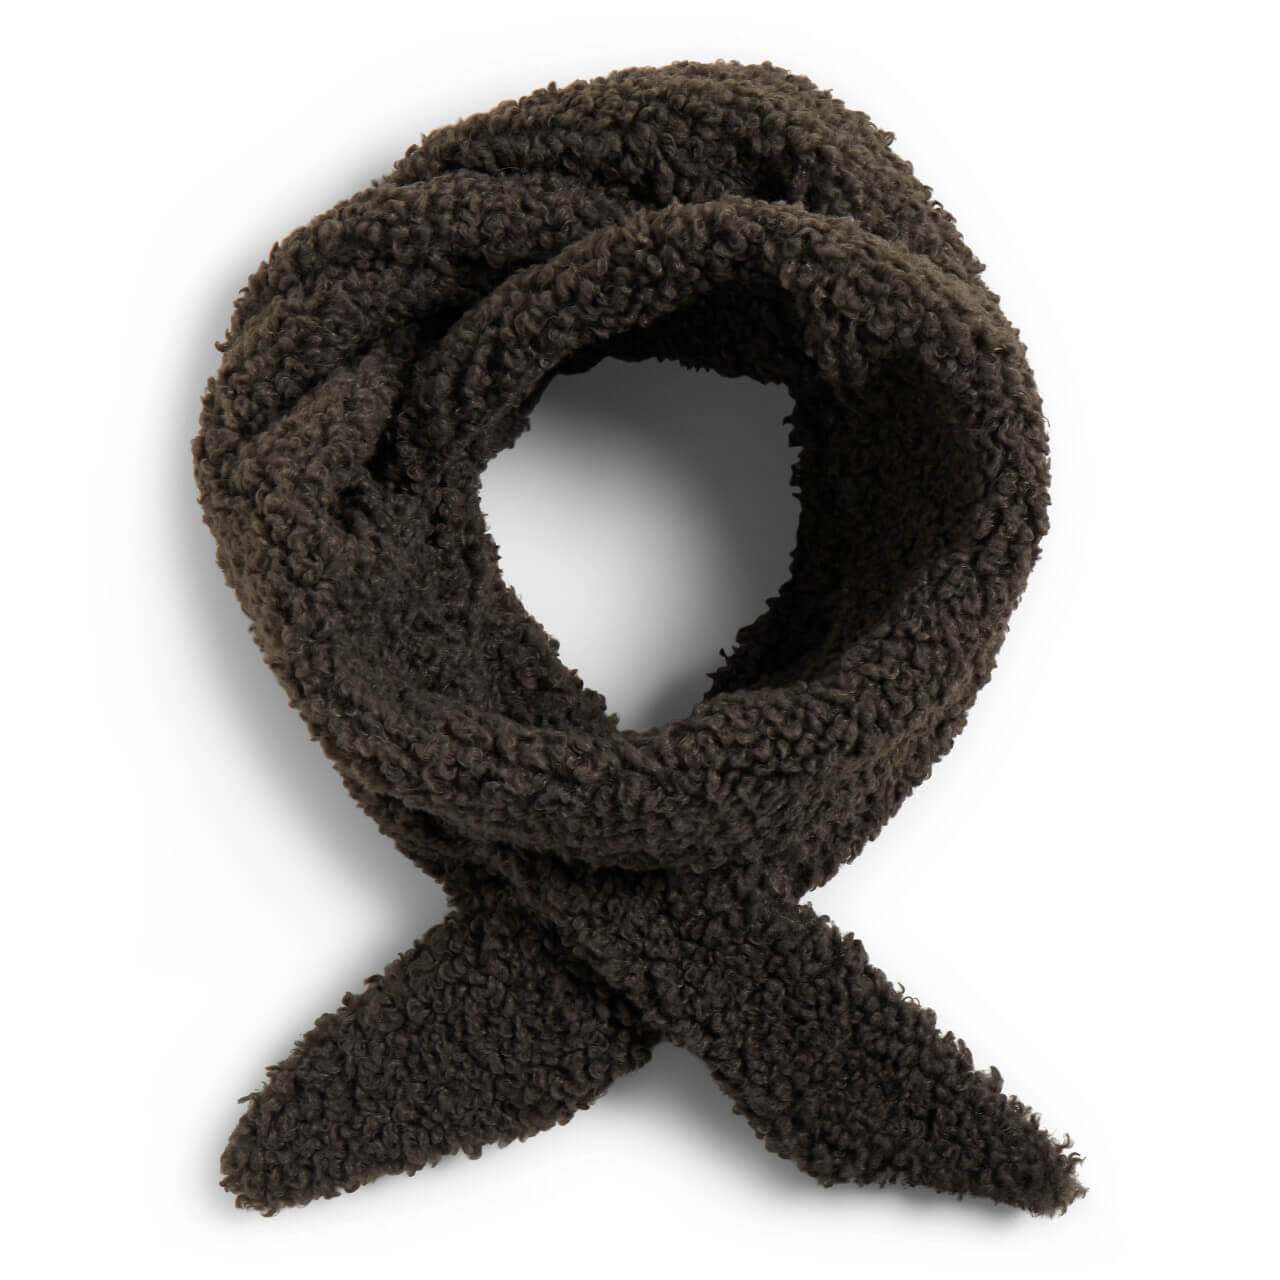 charcoal gray sherpa scarf has a loophole